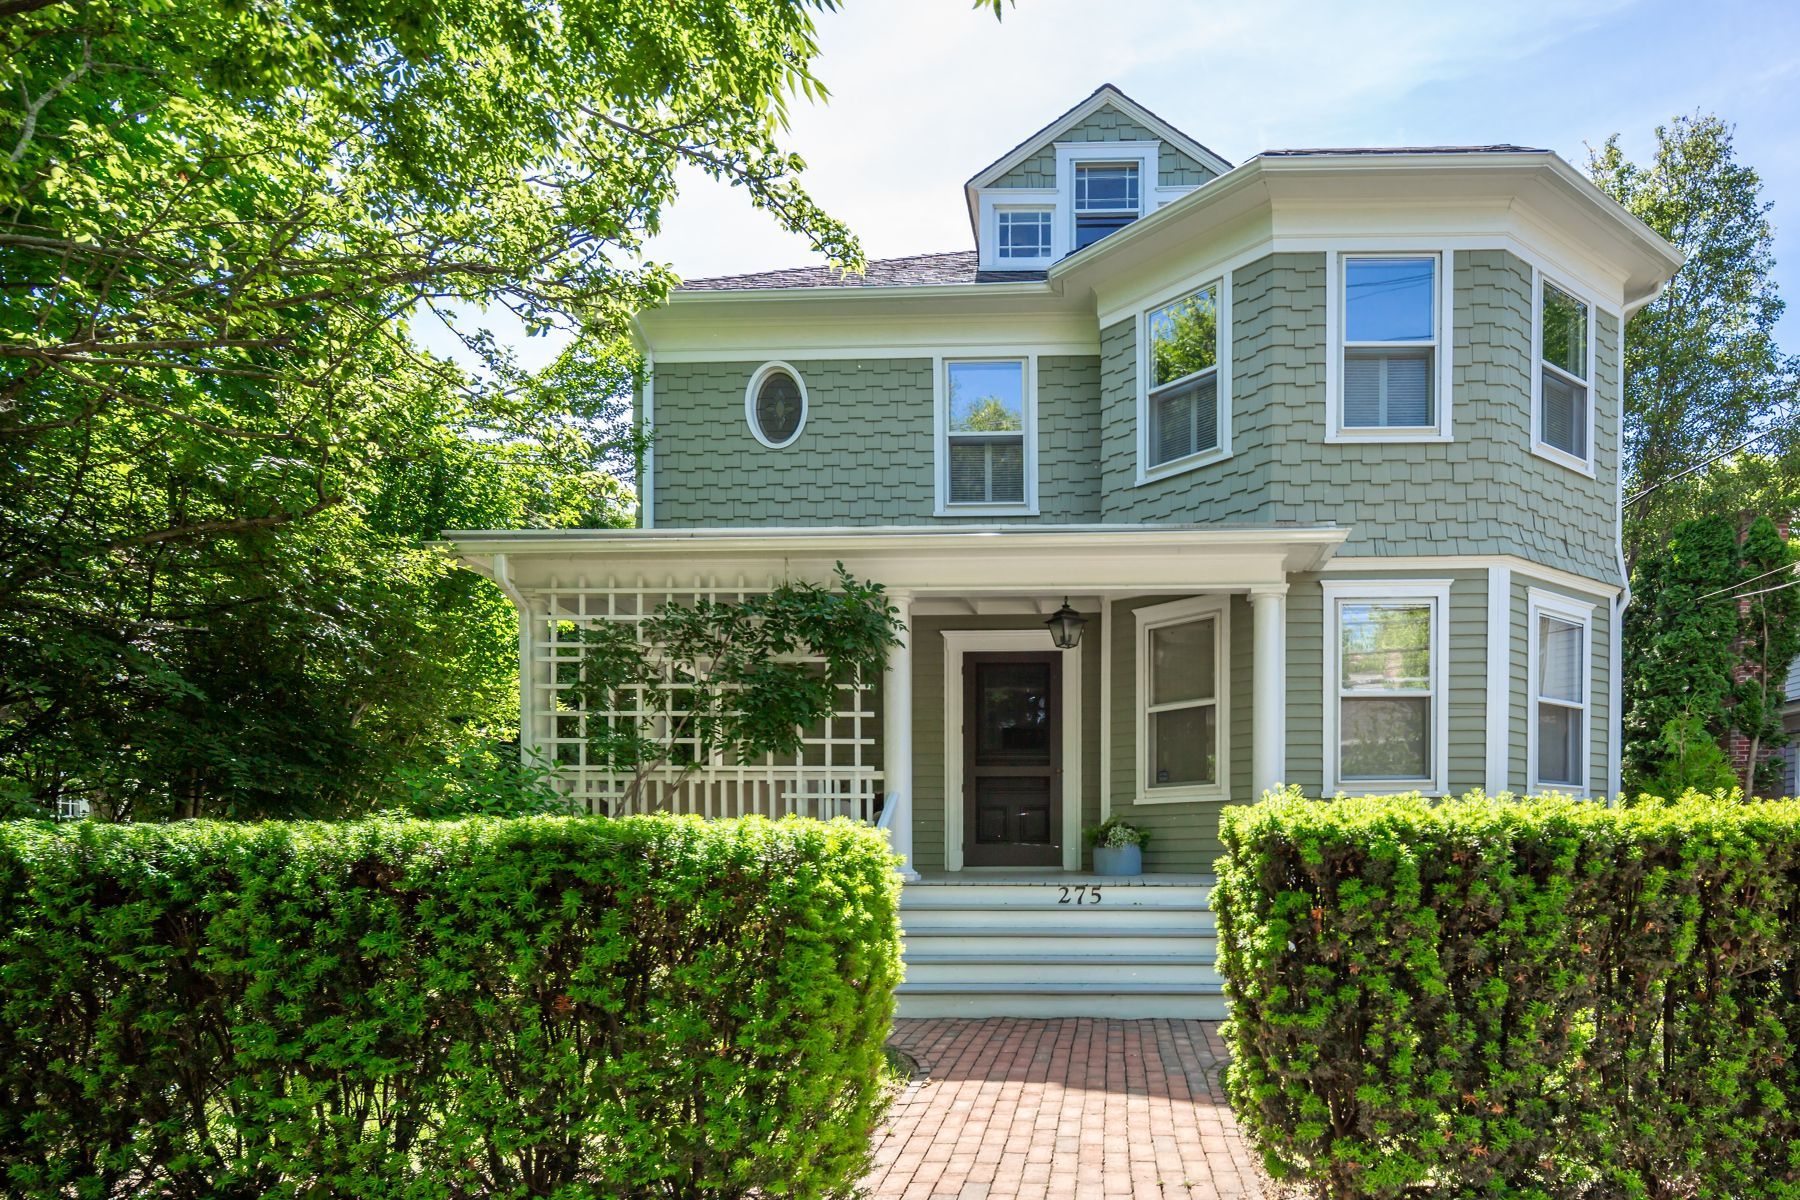 Single Family Homes for Active at Captains Row Queen Anne Revival 275 Main Street Sag Harbor, New York 11963 United States